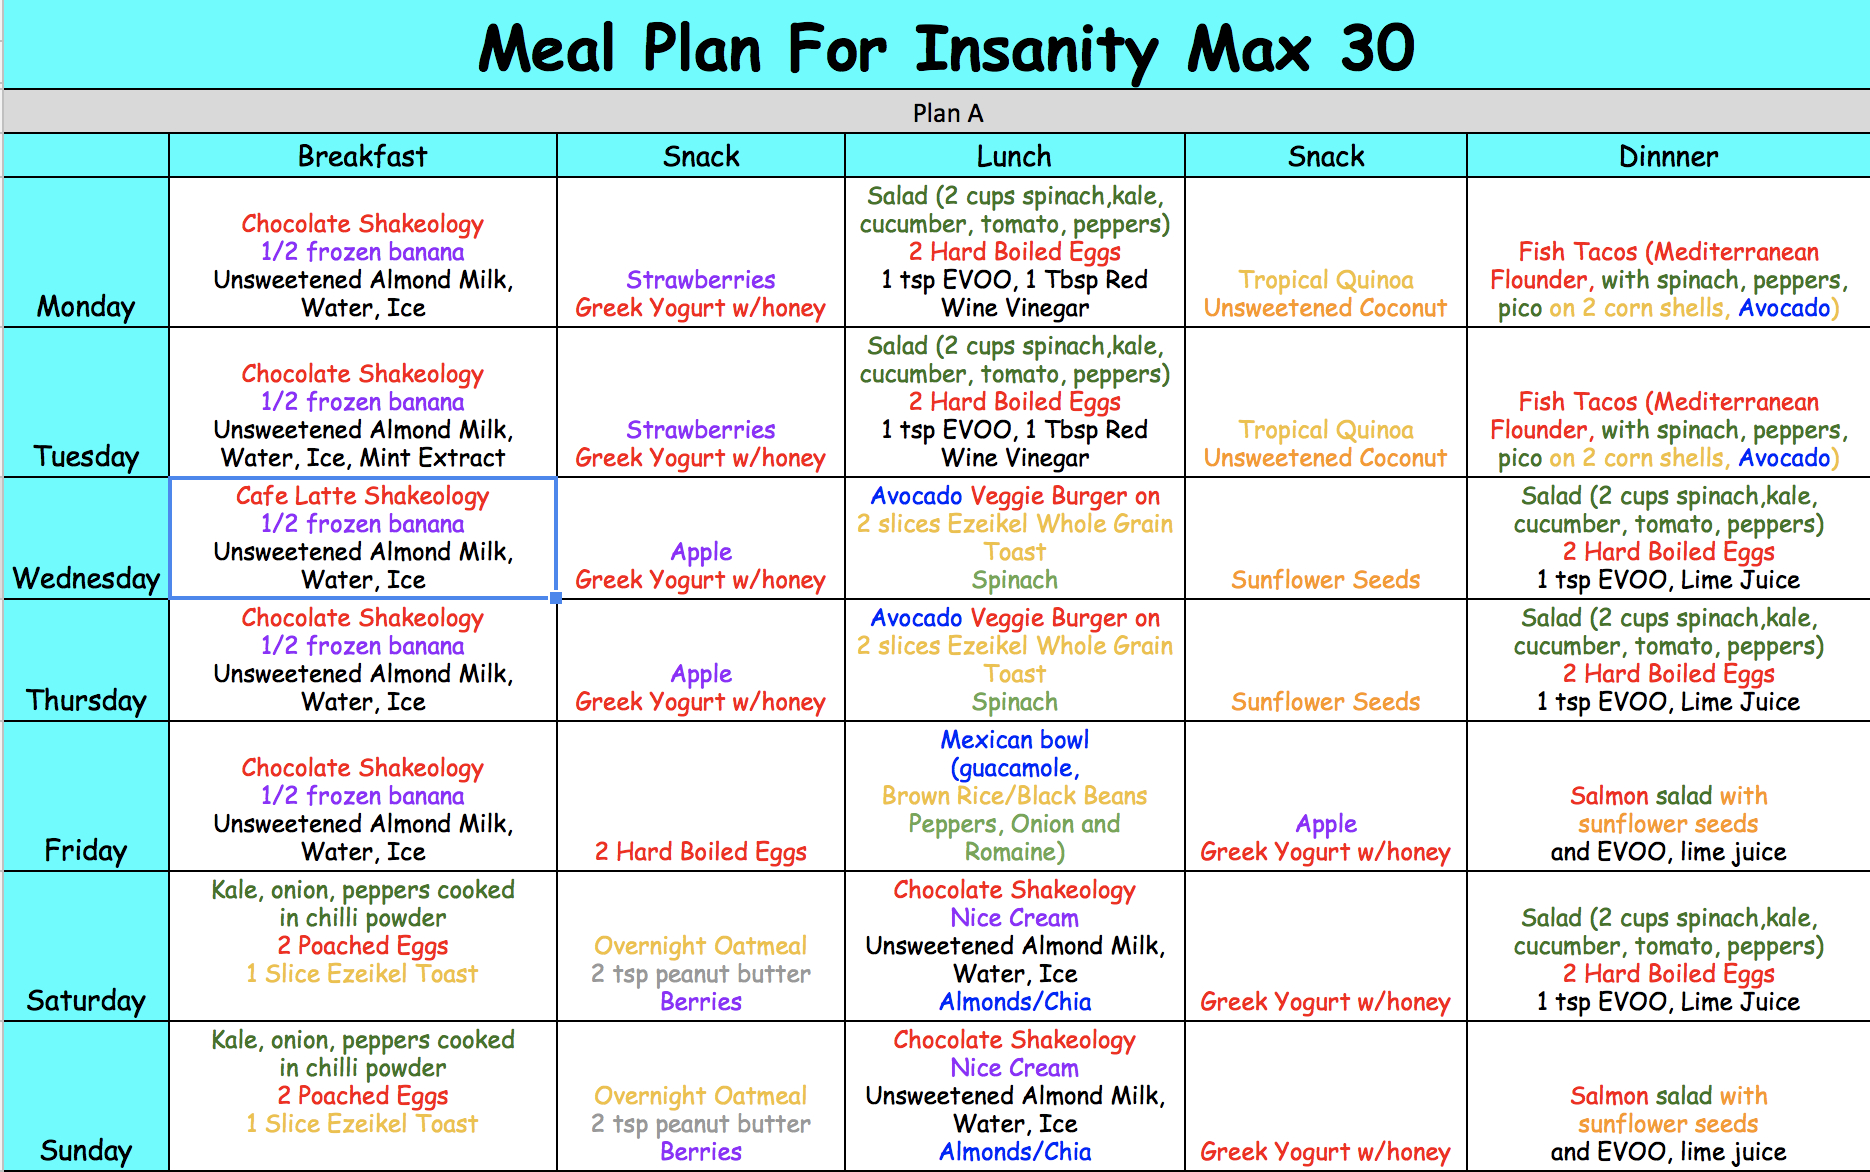 Insanity Max 30 Meal Plan | Insanity Meal Plans, Insanity in Insanity Max 30 Meal Plan